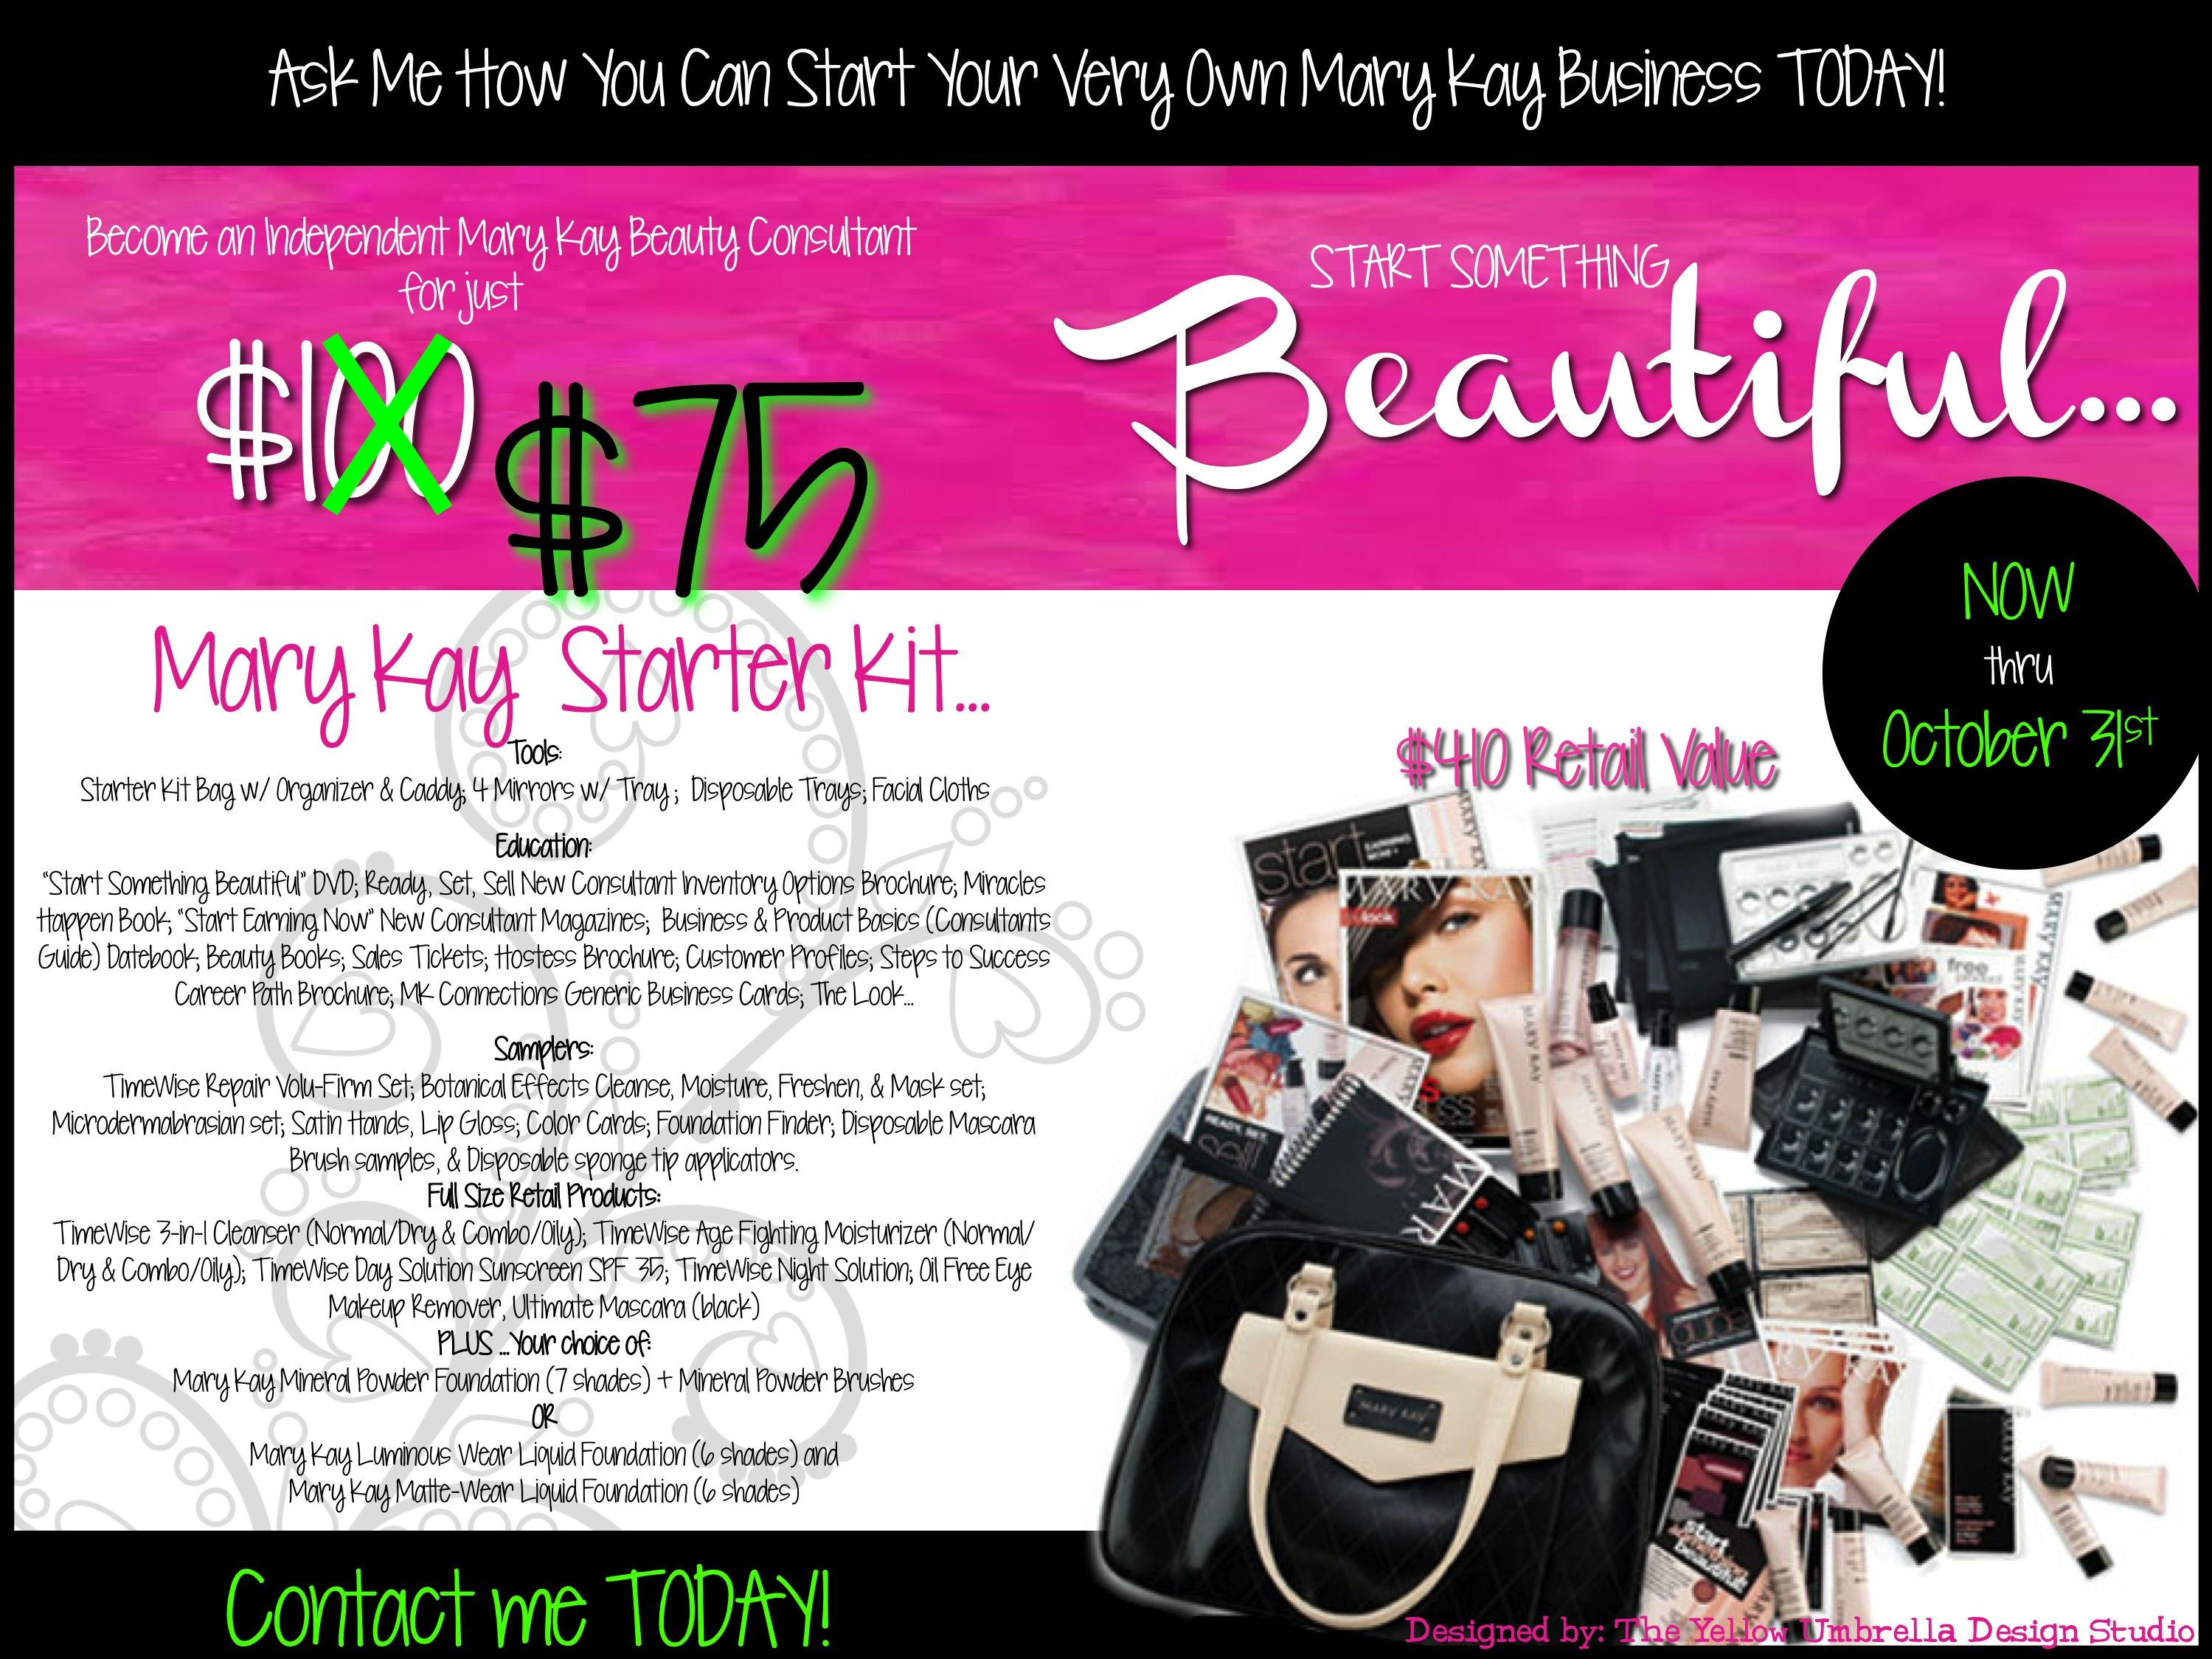 75 mary kay starter kit 2012 marykay mary kay materials september contact your mary kay beauty consultant today ccuart Images